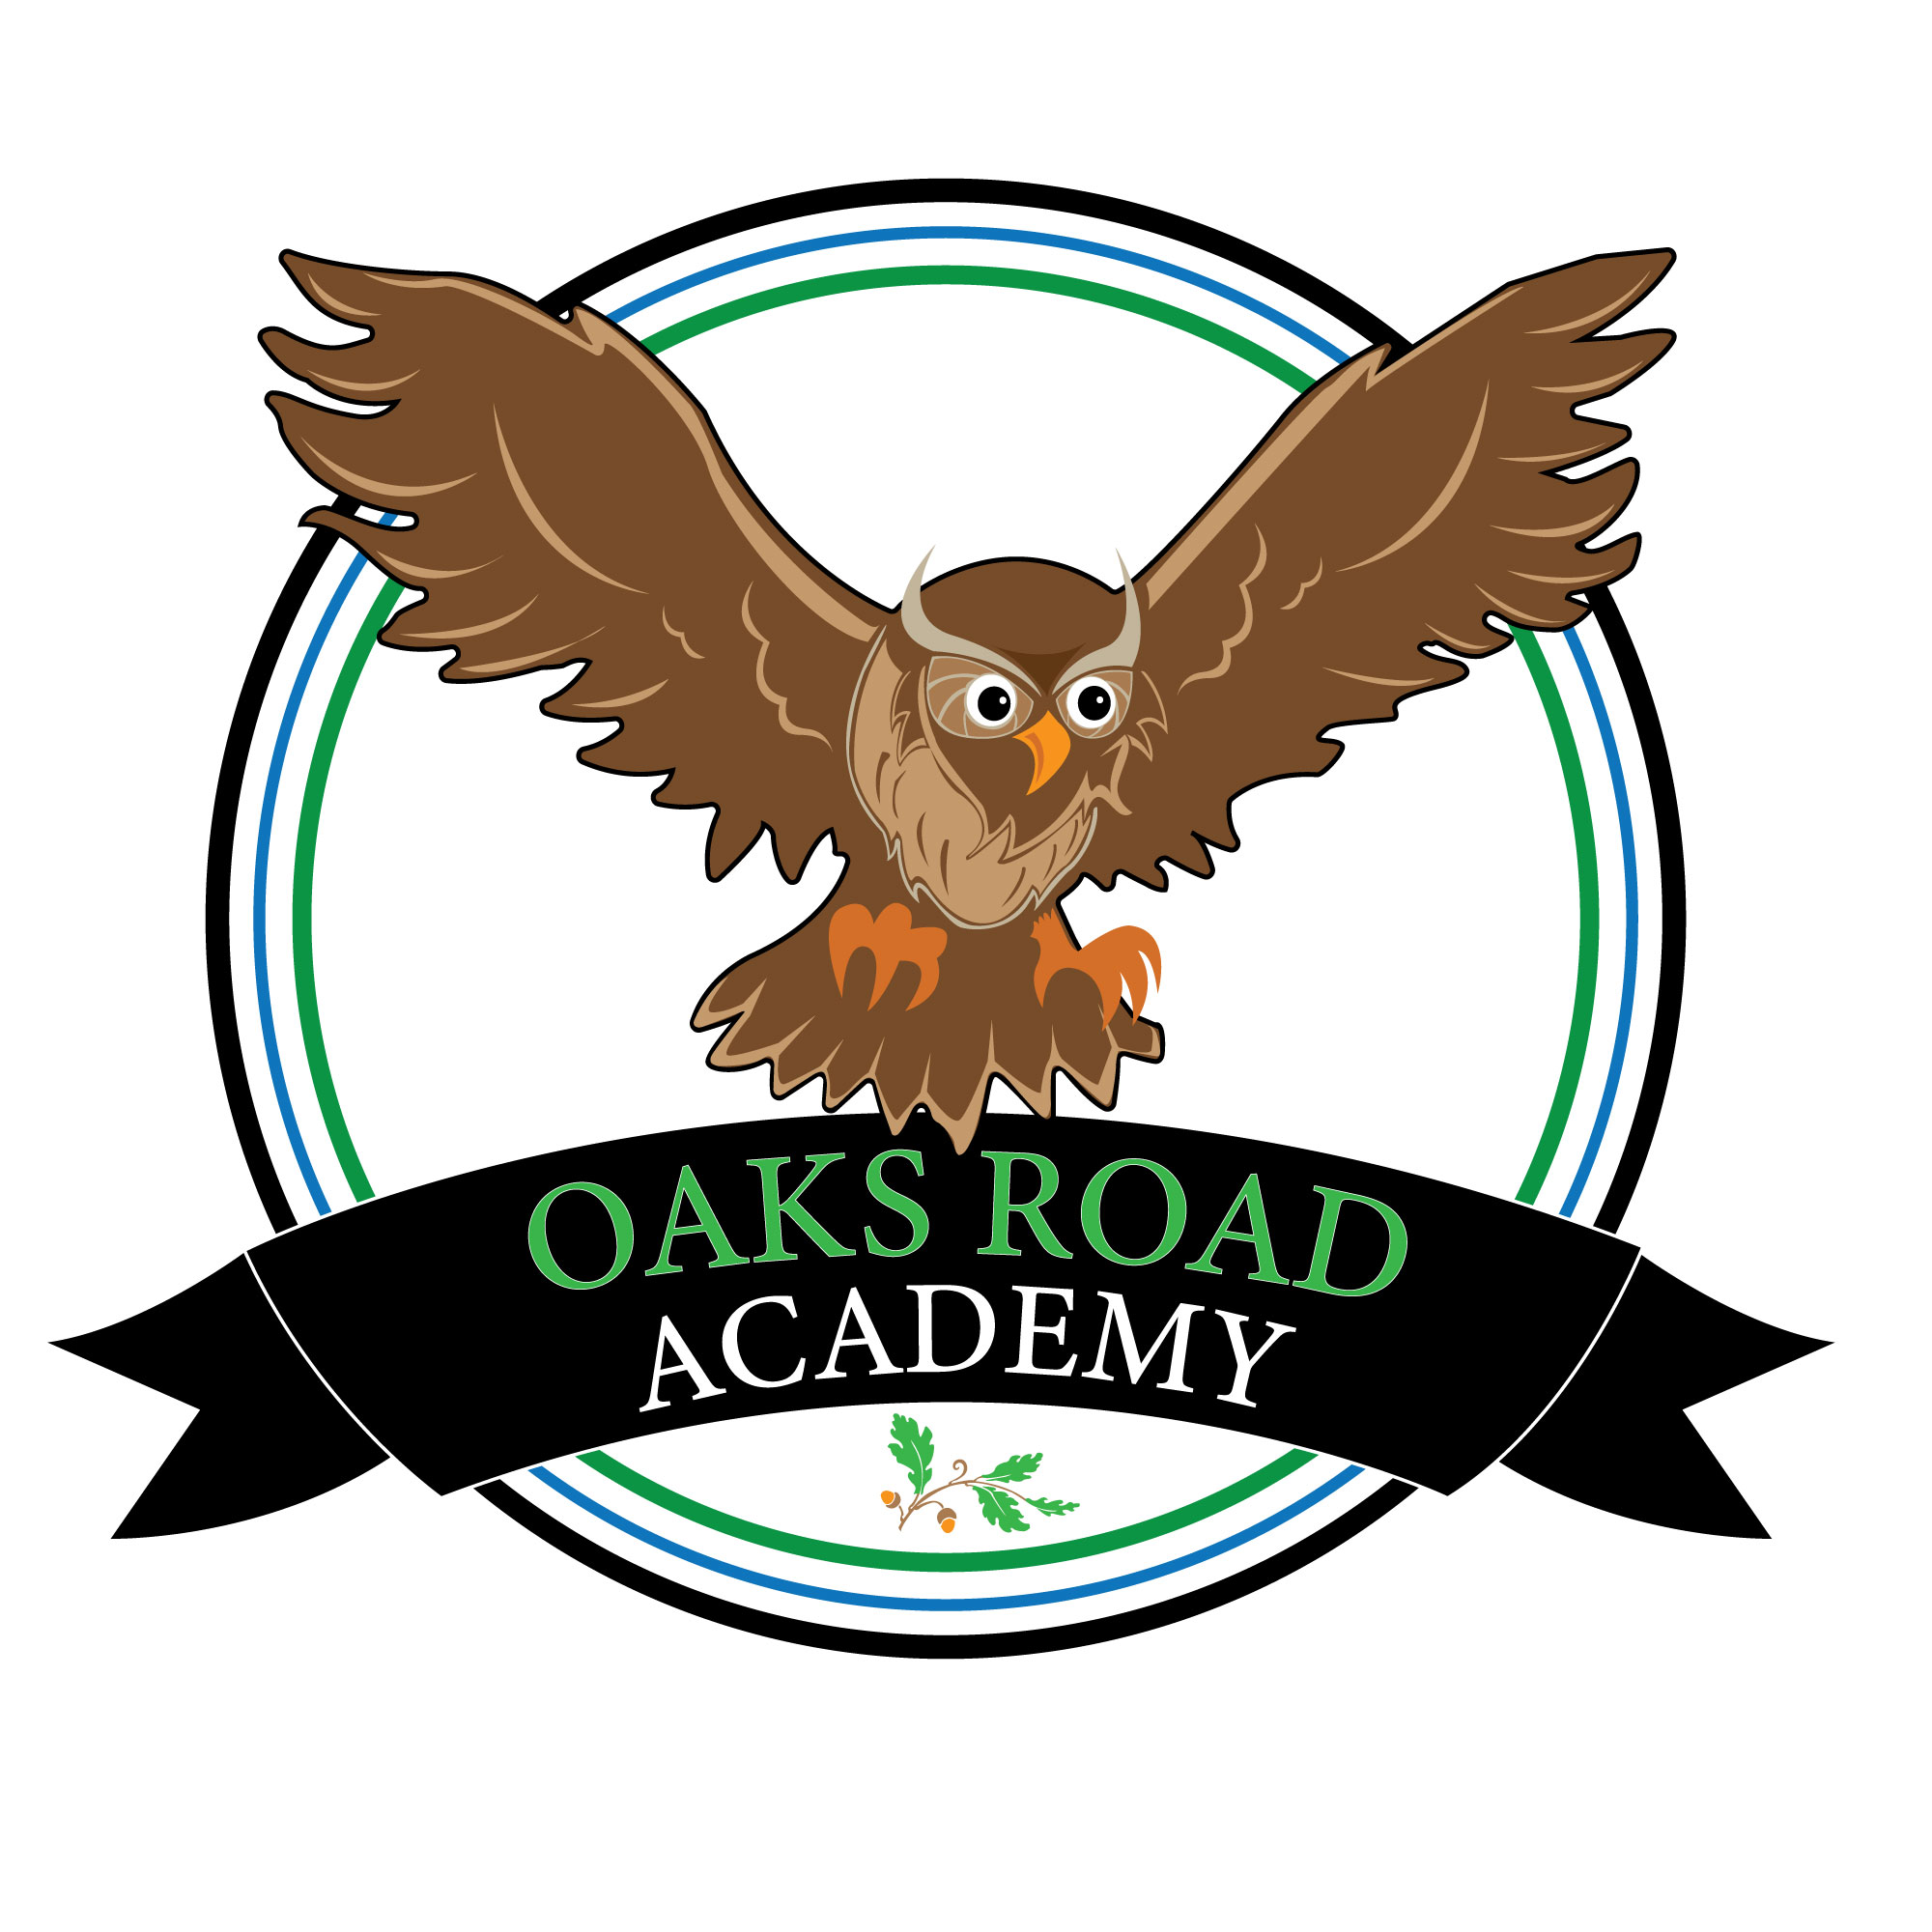 Oaks Road Academy